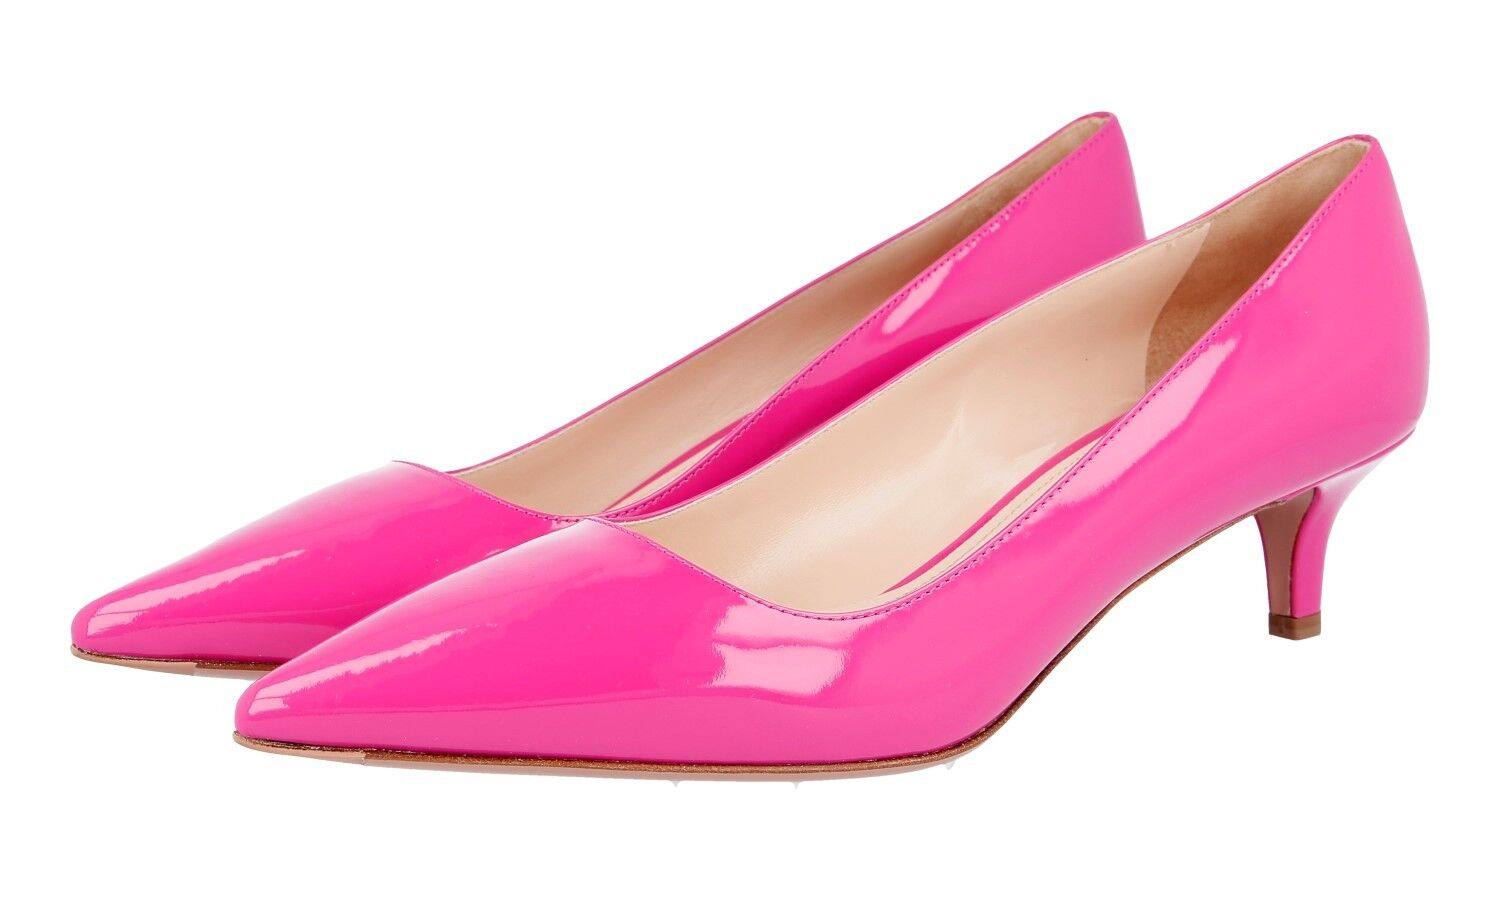 AUTHENTIC LUXURY PRADA PUMPS SHOES 1I619D PEONIA NEW 40 40,5